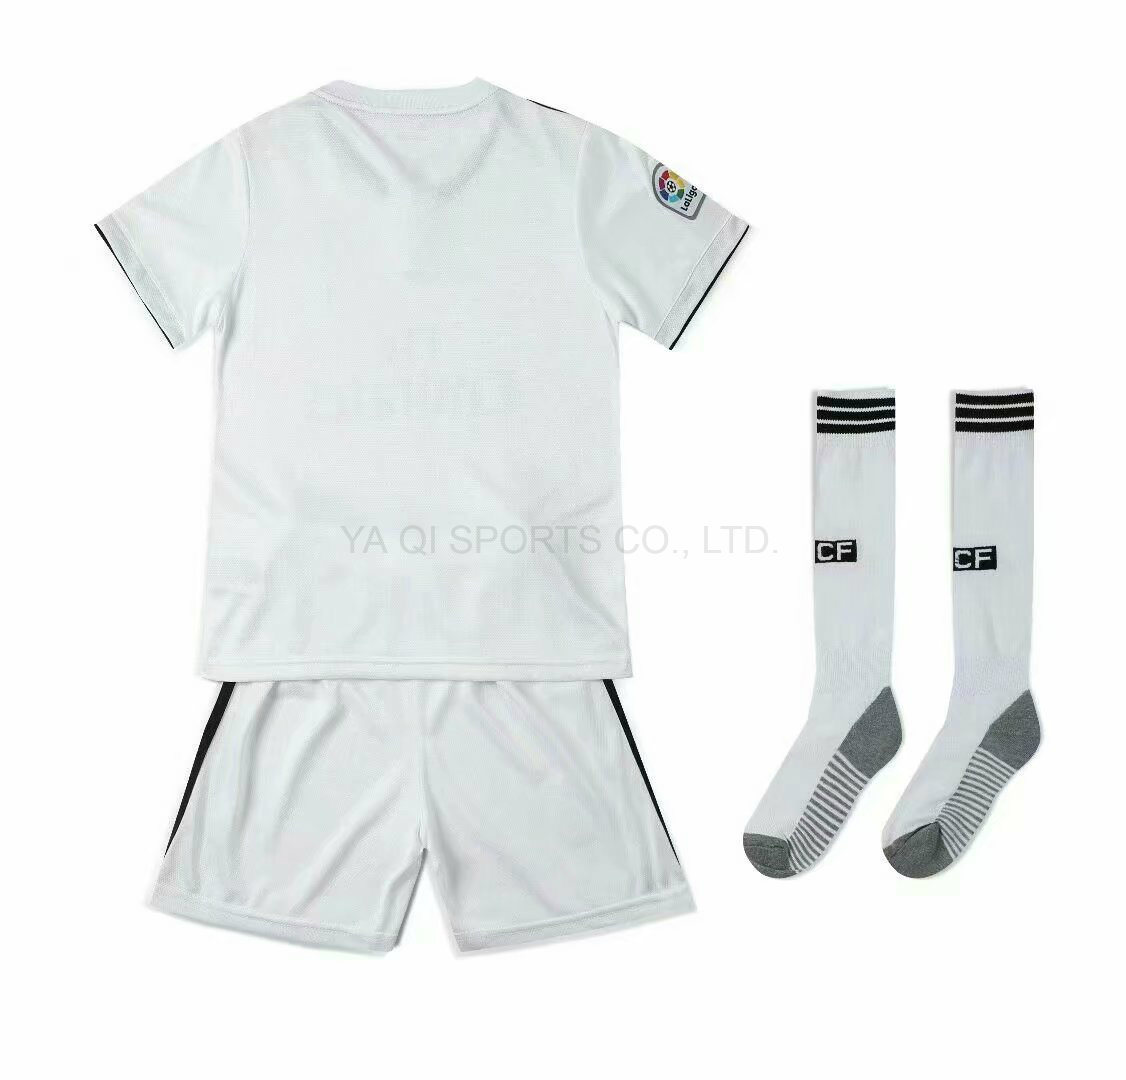 1f4657baca5 China Custom Football Uniforms Sets Sublimation Shirts Kids Soccer ...